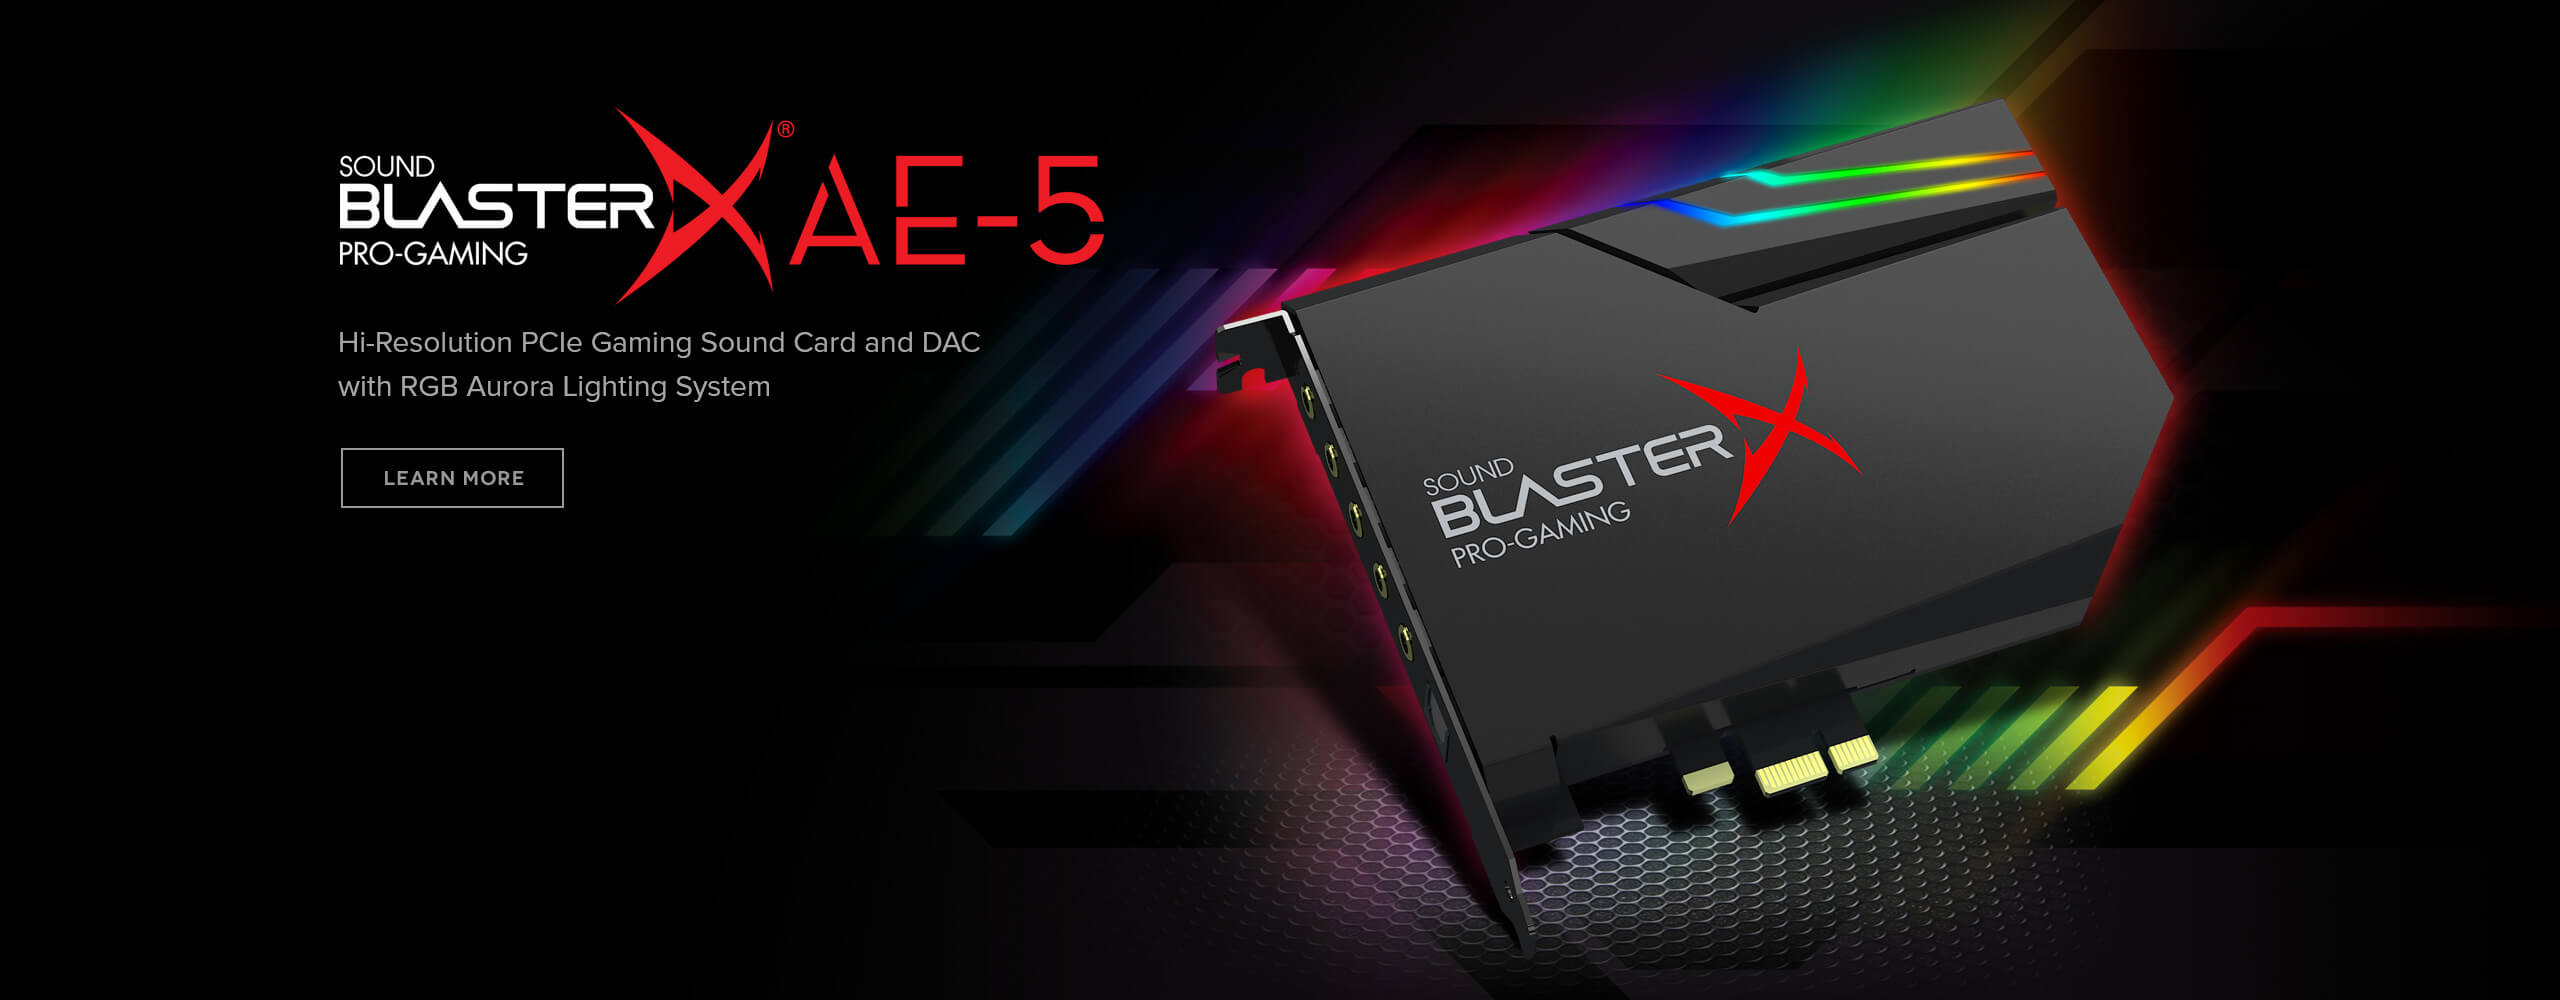 Sound Blaster Sound Cards, Gaming Headsets, Sound BlasterAxx